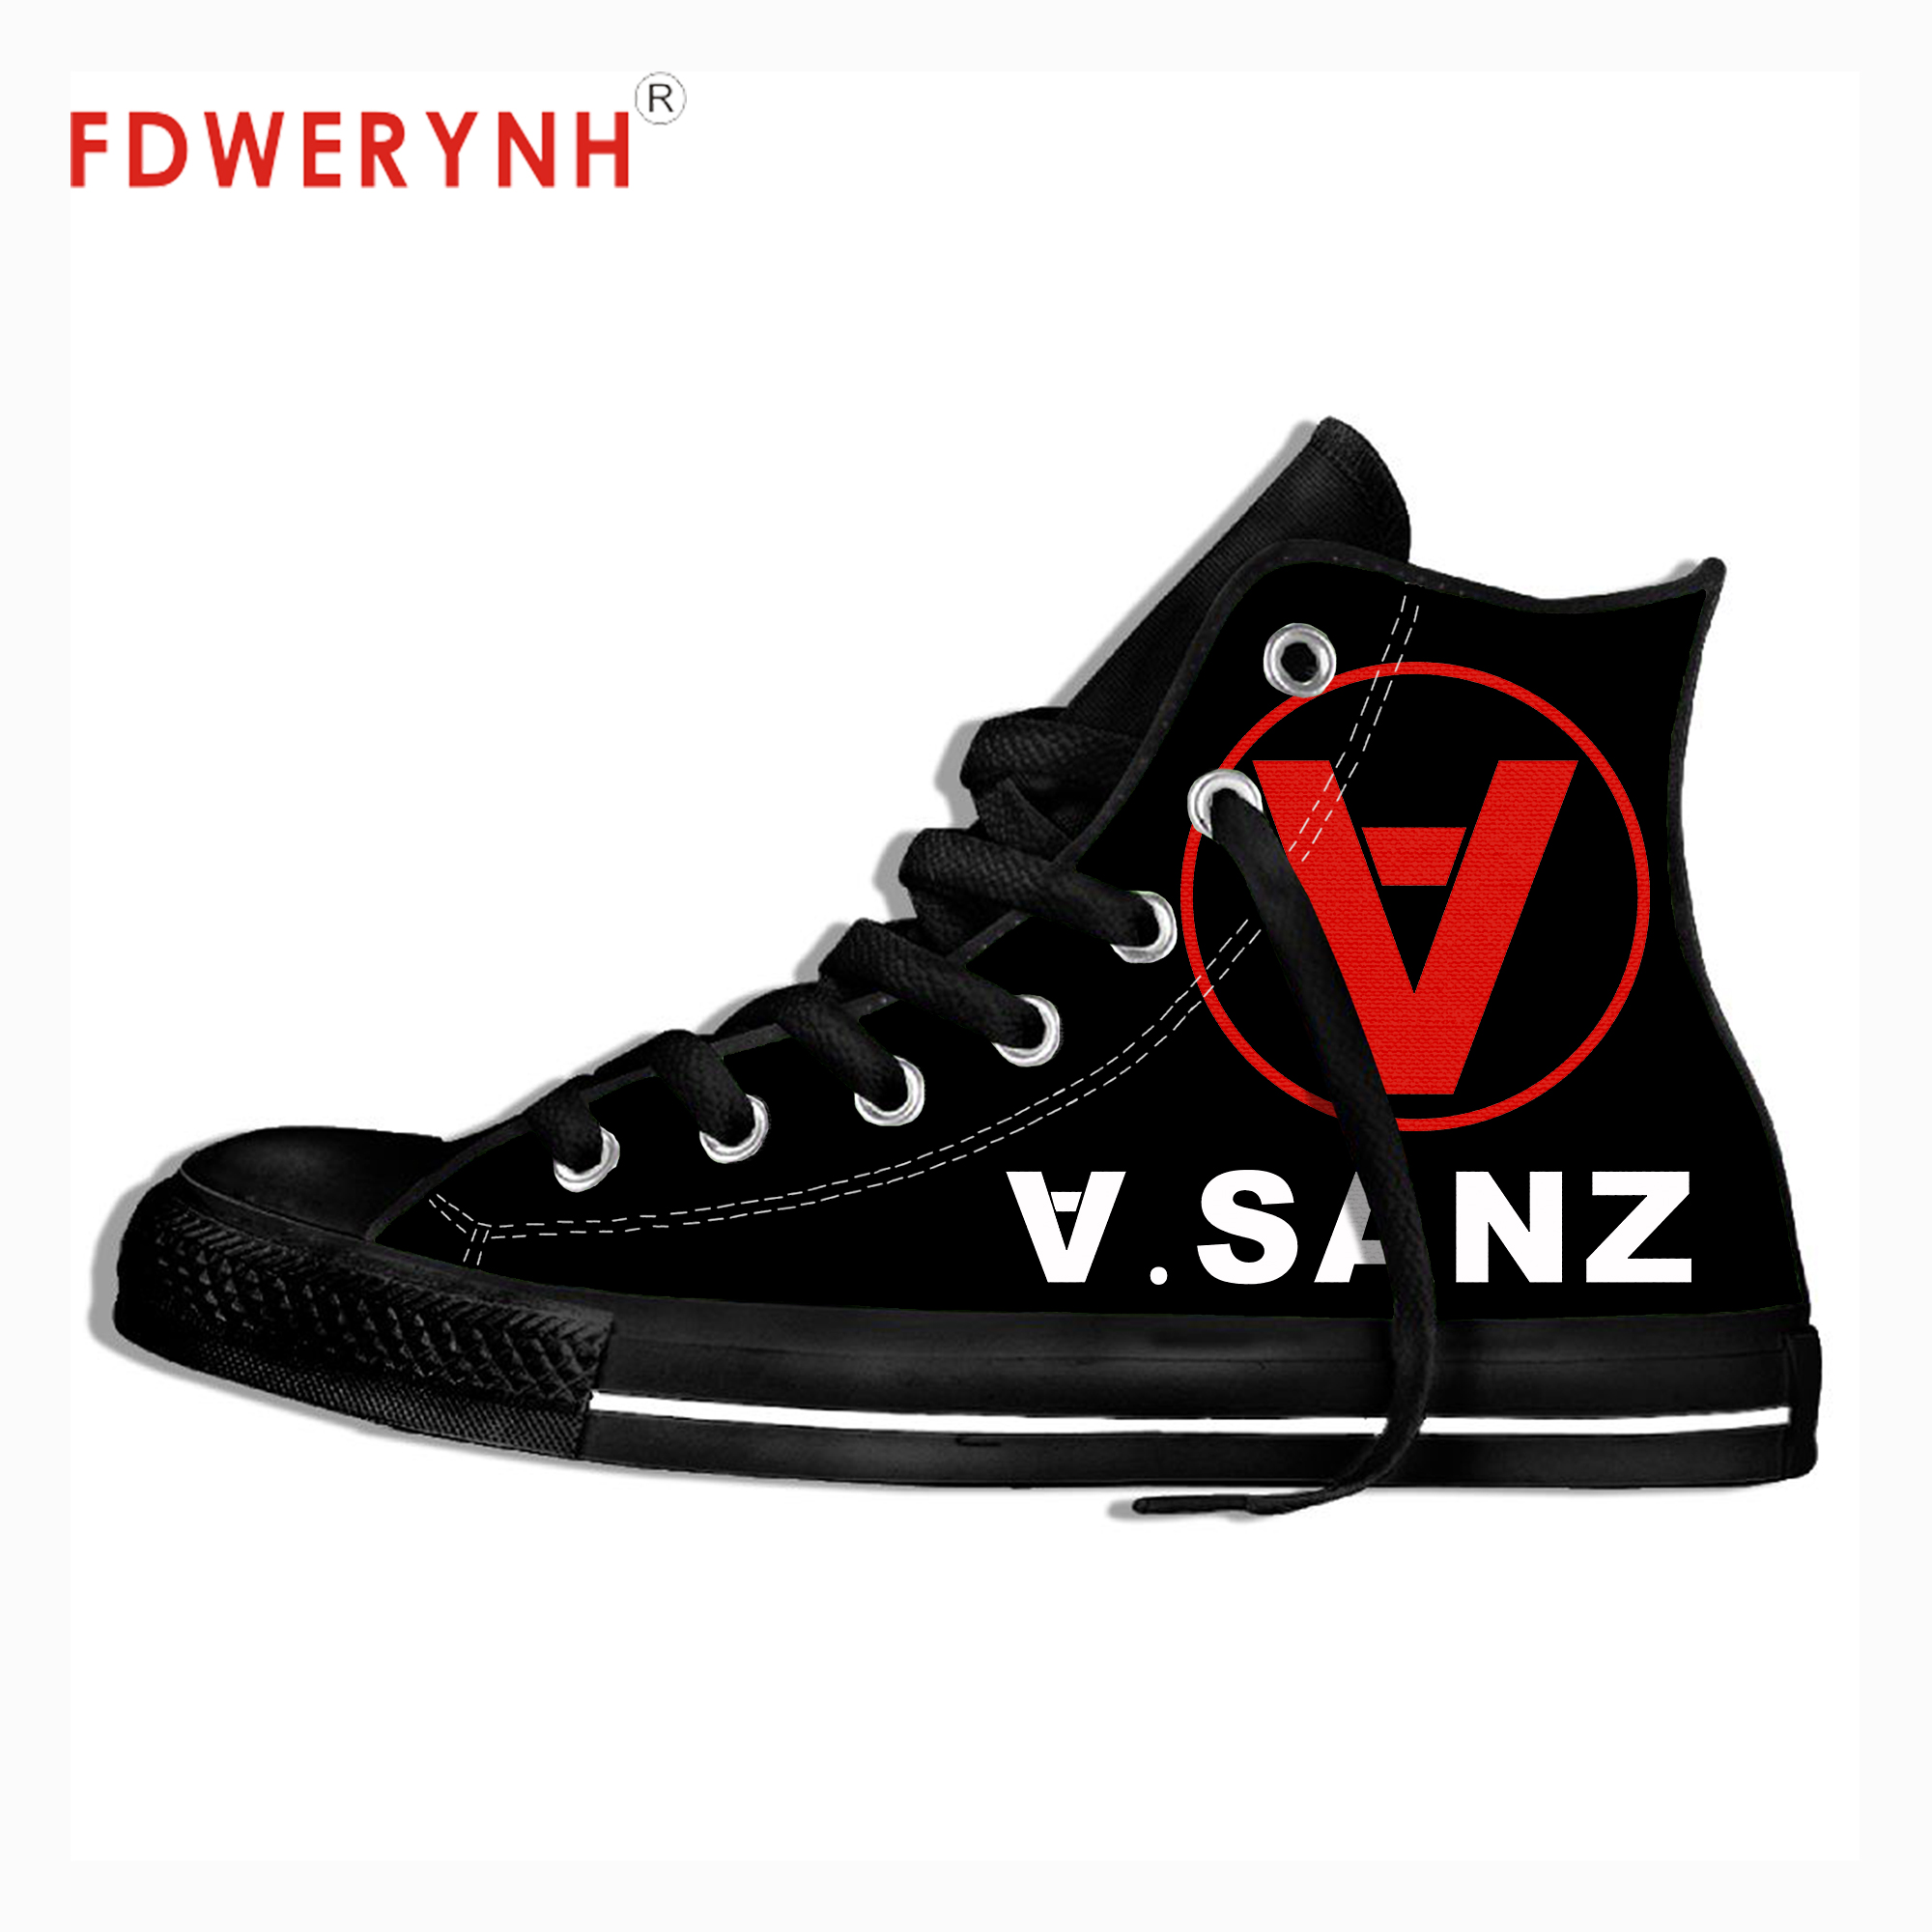 Men's Canvas Casual Shoes ALEJANDRO SANZ Band All Nite Party Official Band Customize Pattern Color Lace-up Leisure Flats Shoe